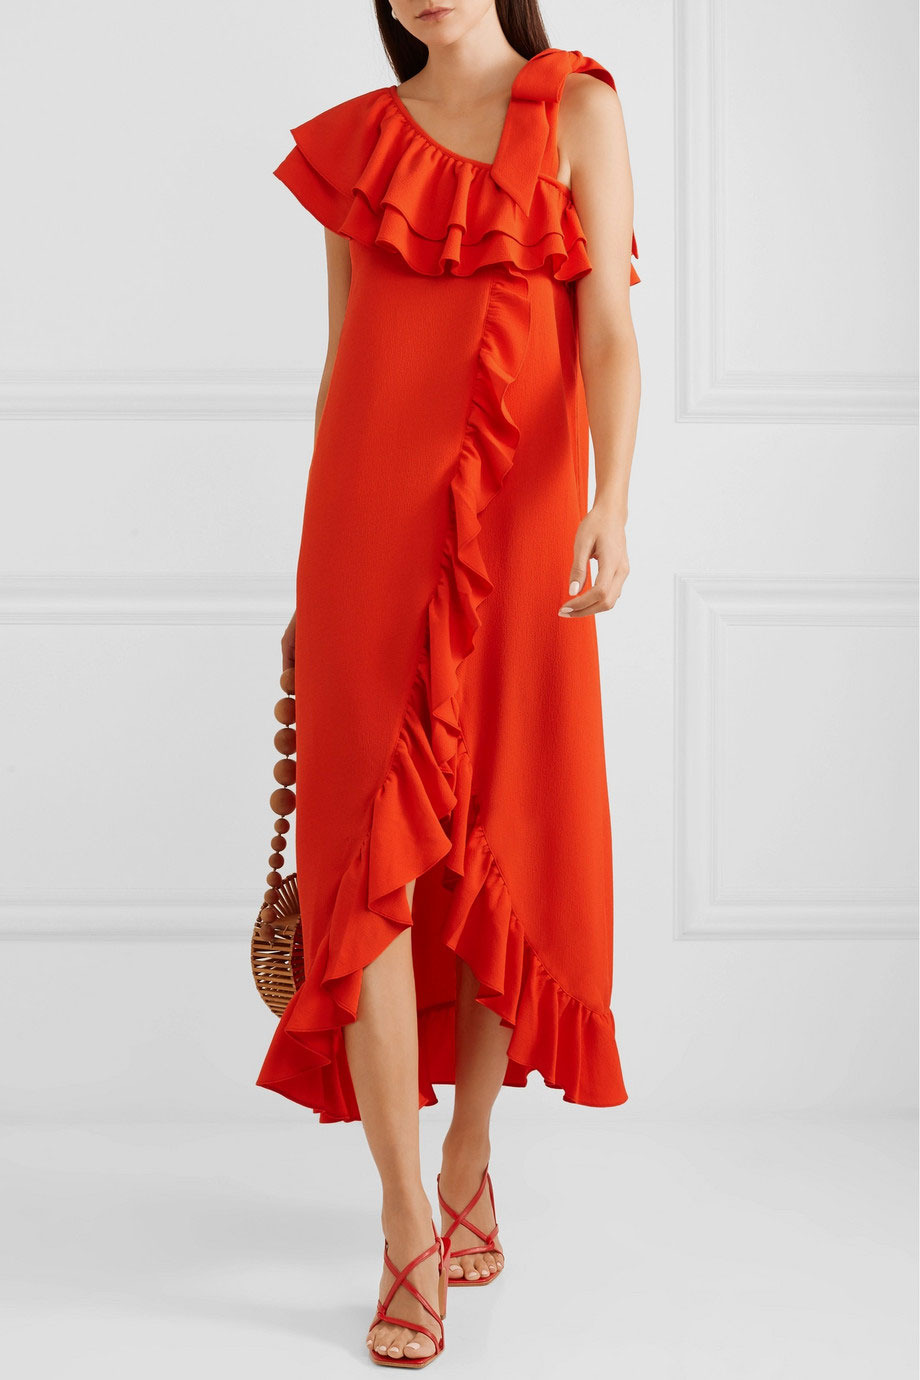 Ganni Clark Ruffled Maxi Dress